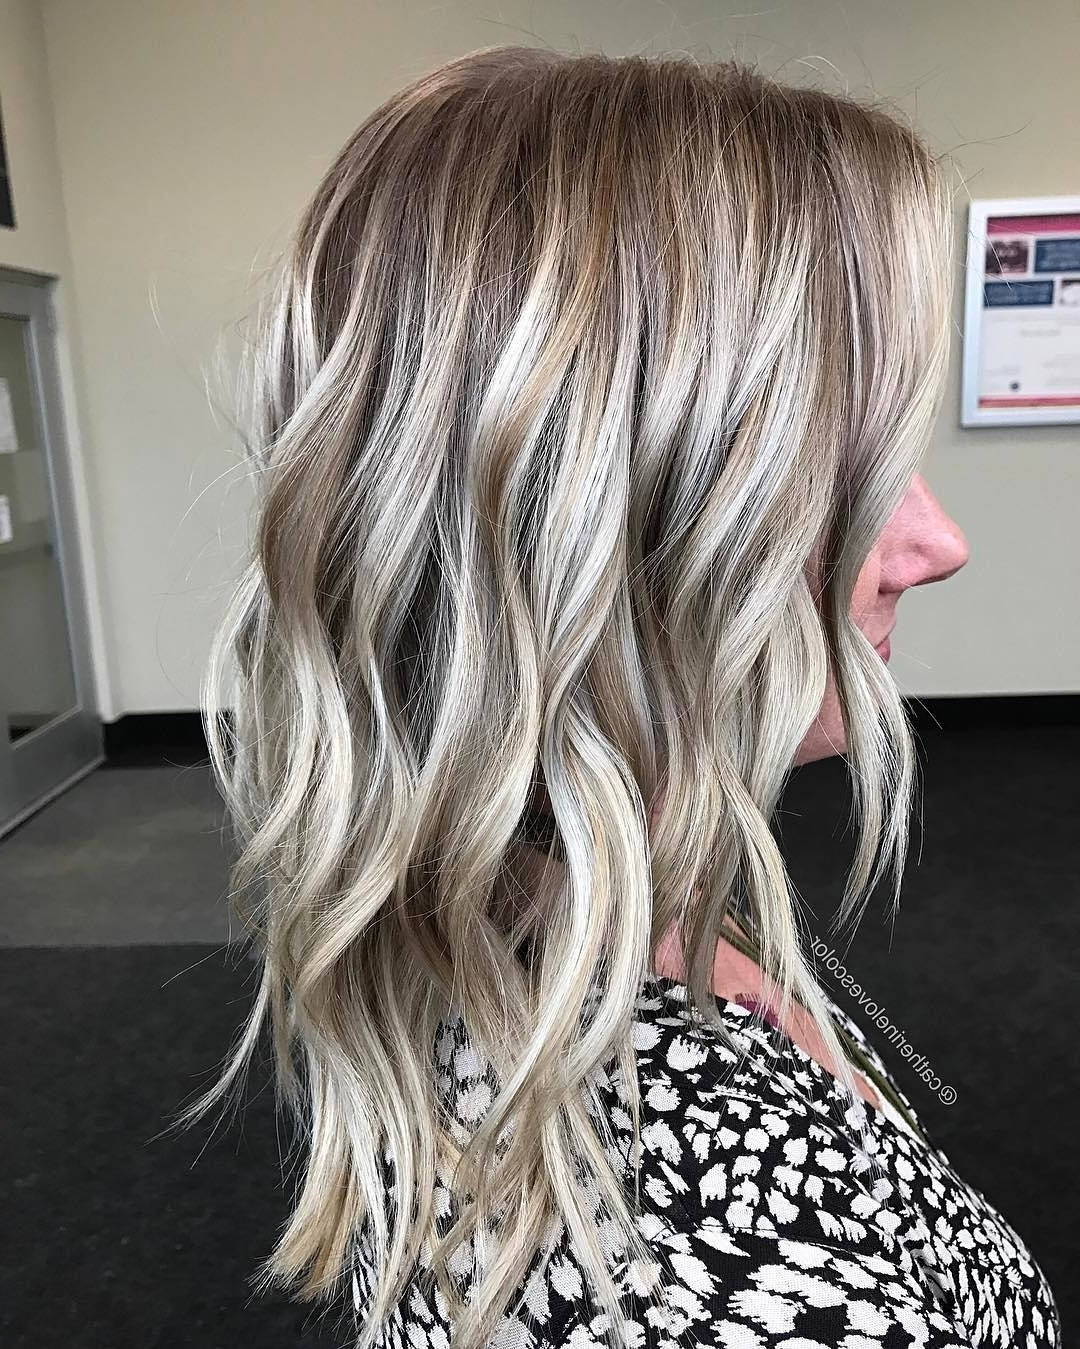 Fashionable Dark Brown Hair Hairstyles With Silver Blonde Highlights Intended For 20 Beautiful Blonde Balayage Hair Color Ideas – Trendy Hair Color  (View 12 of 20)